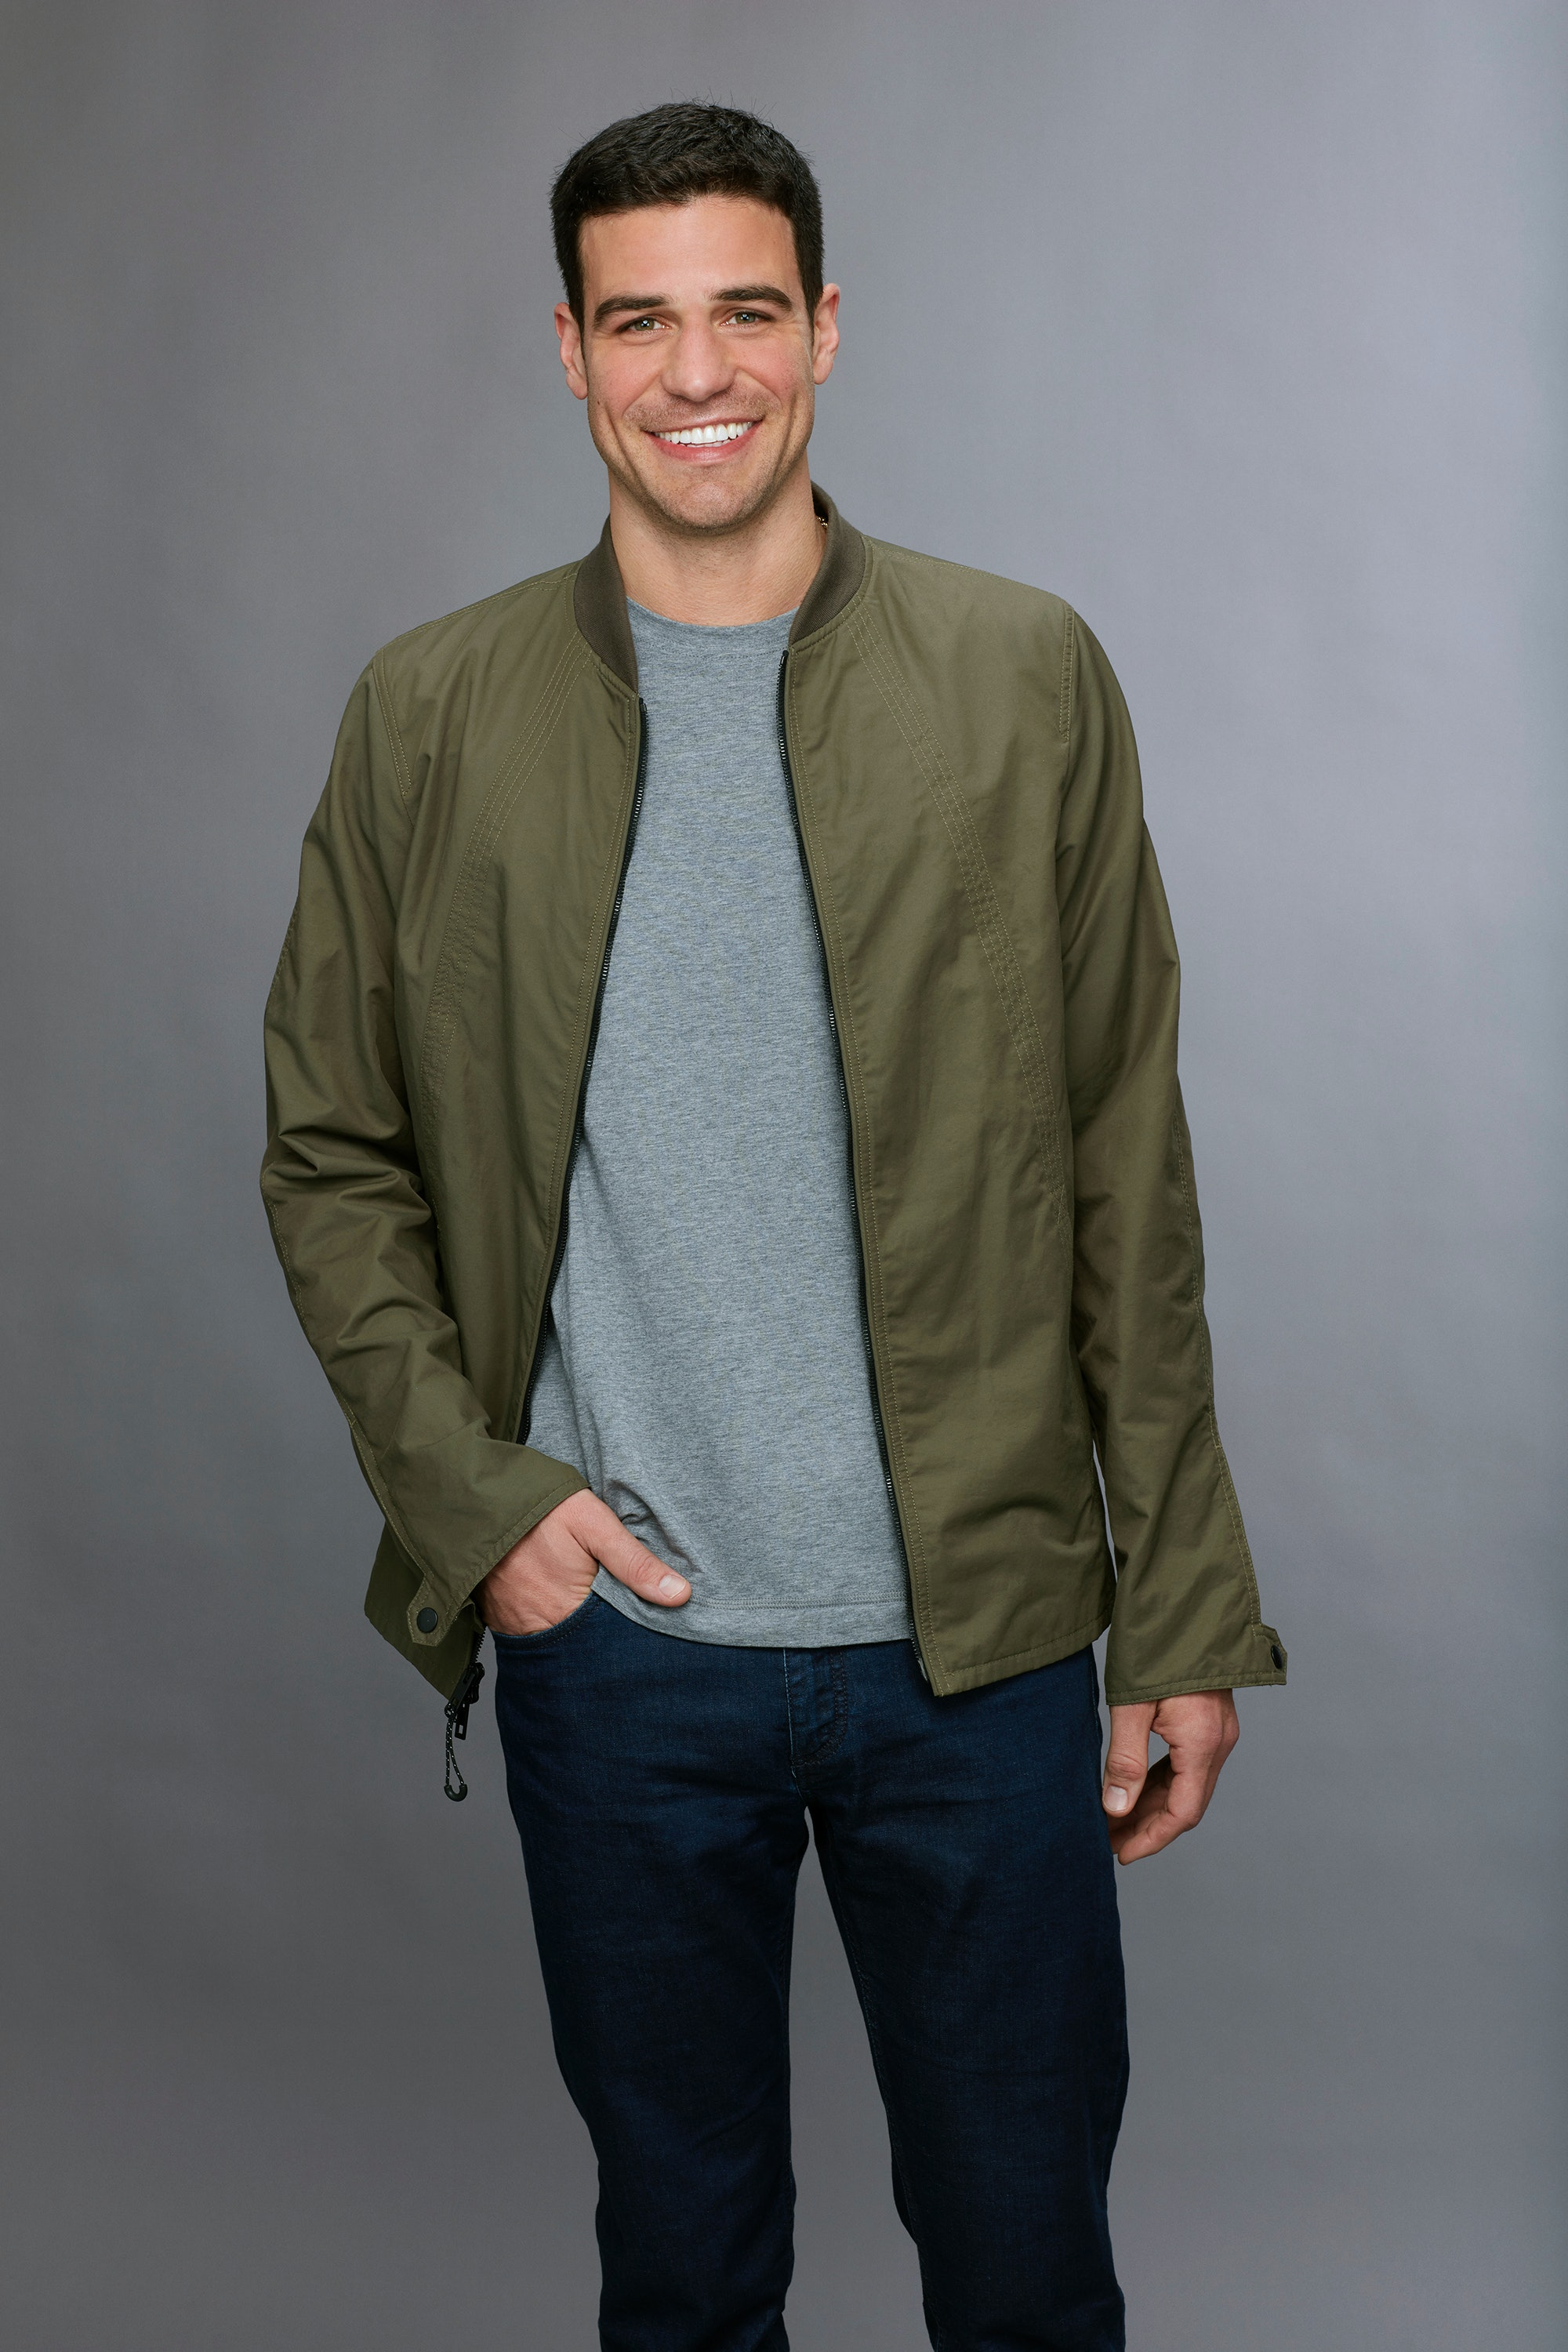 Who is chris from the bachelorette hookup